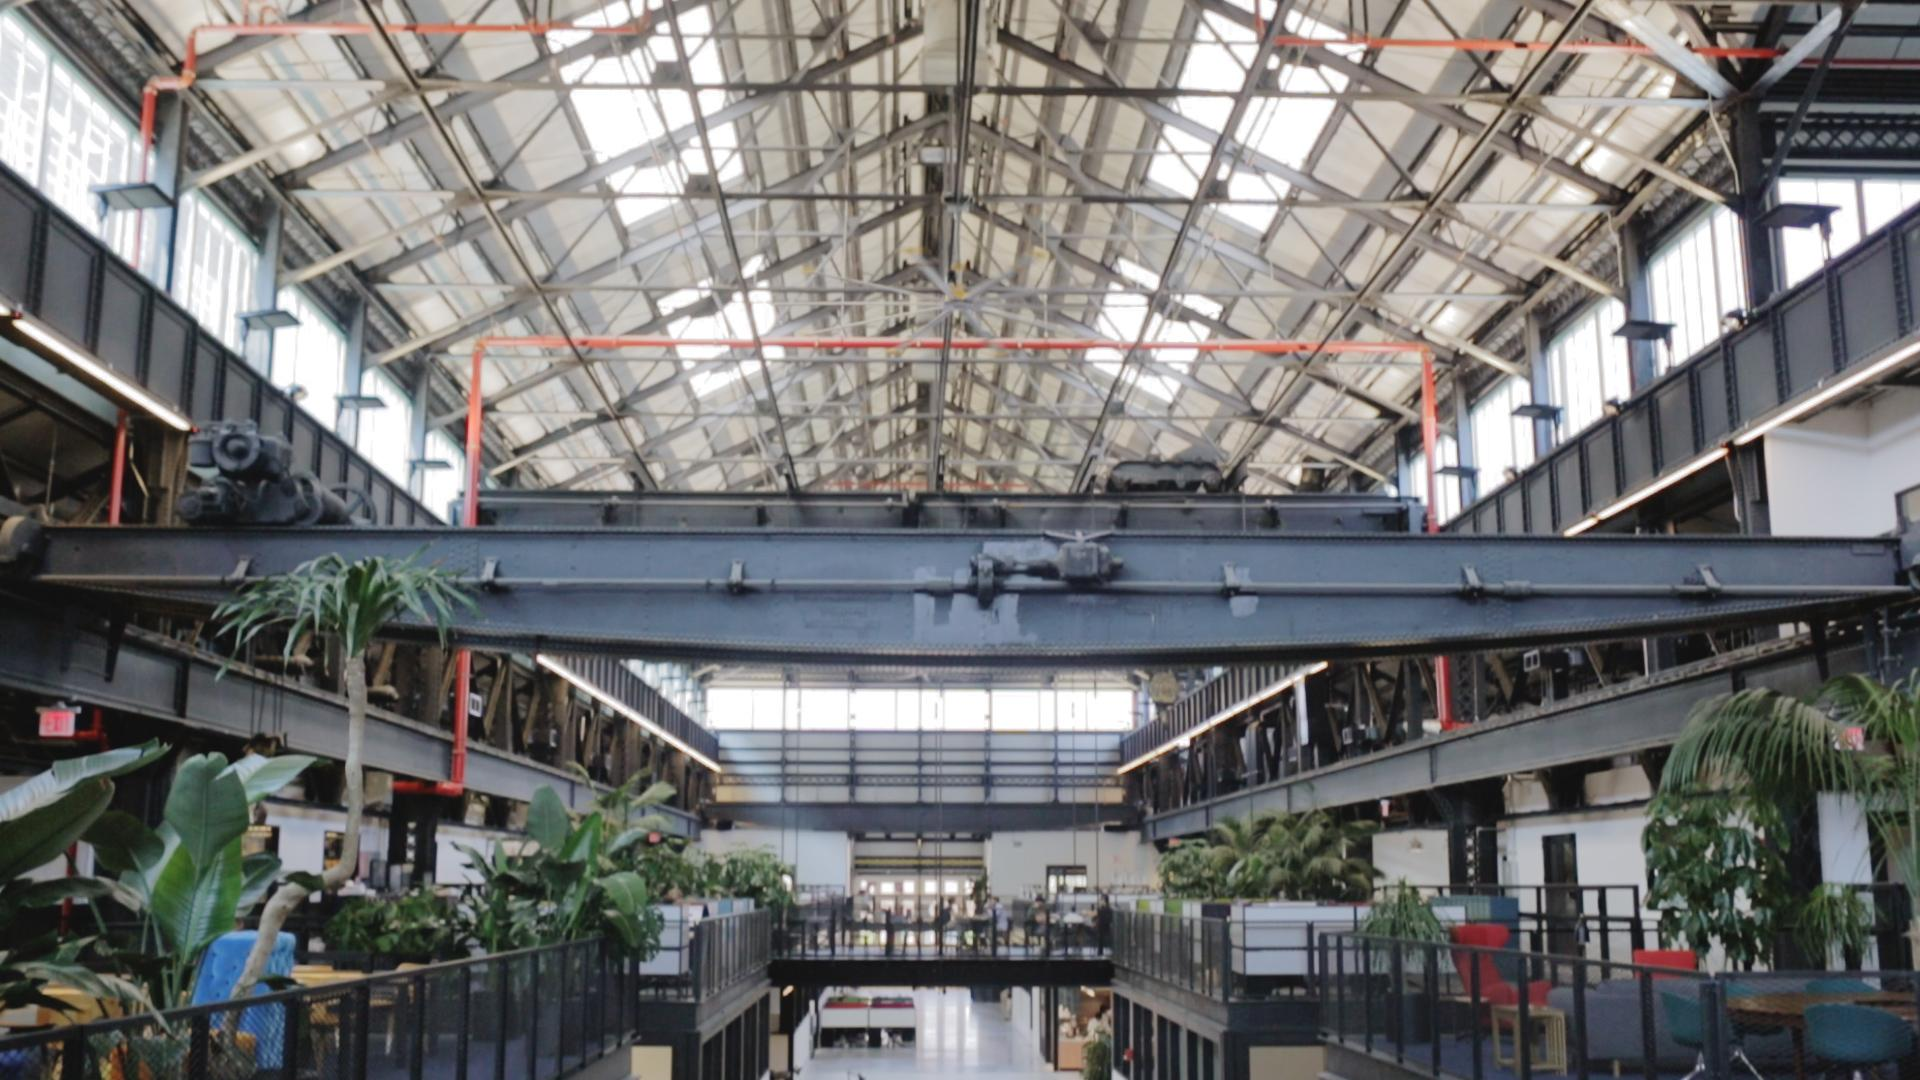 New Lab brings hardware startups to Brooklyn's Navy Yard